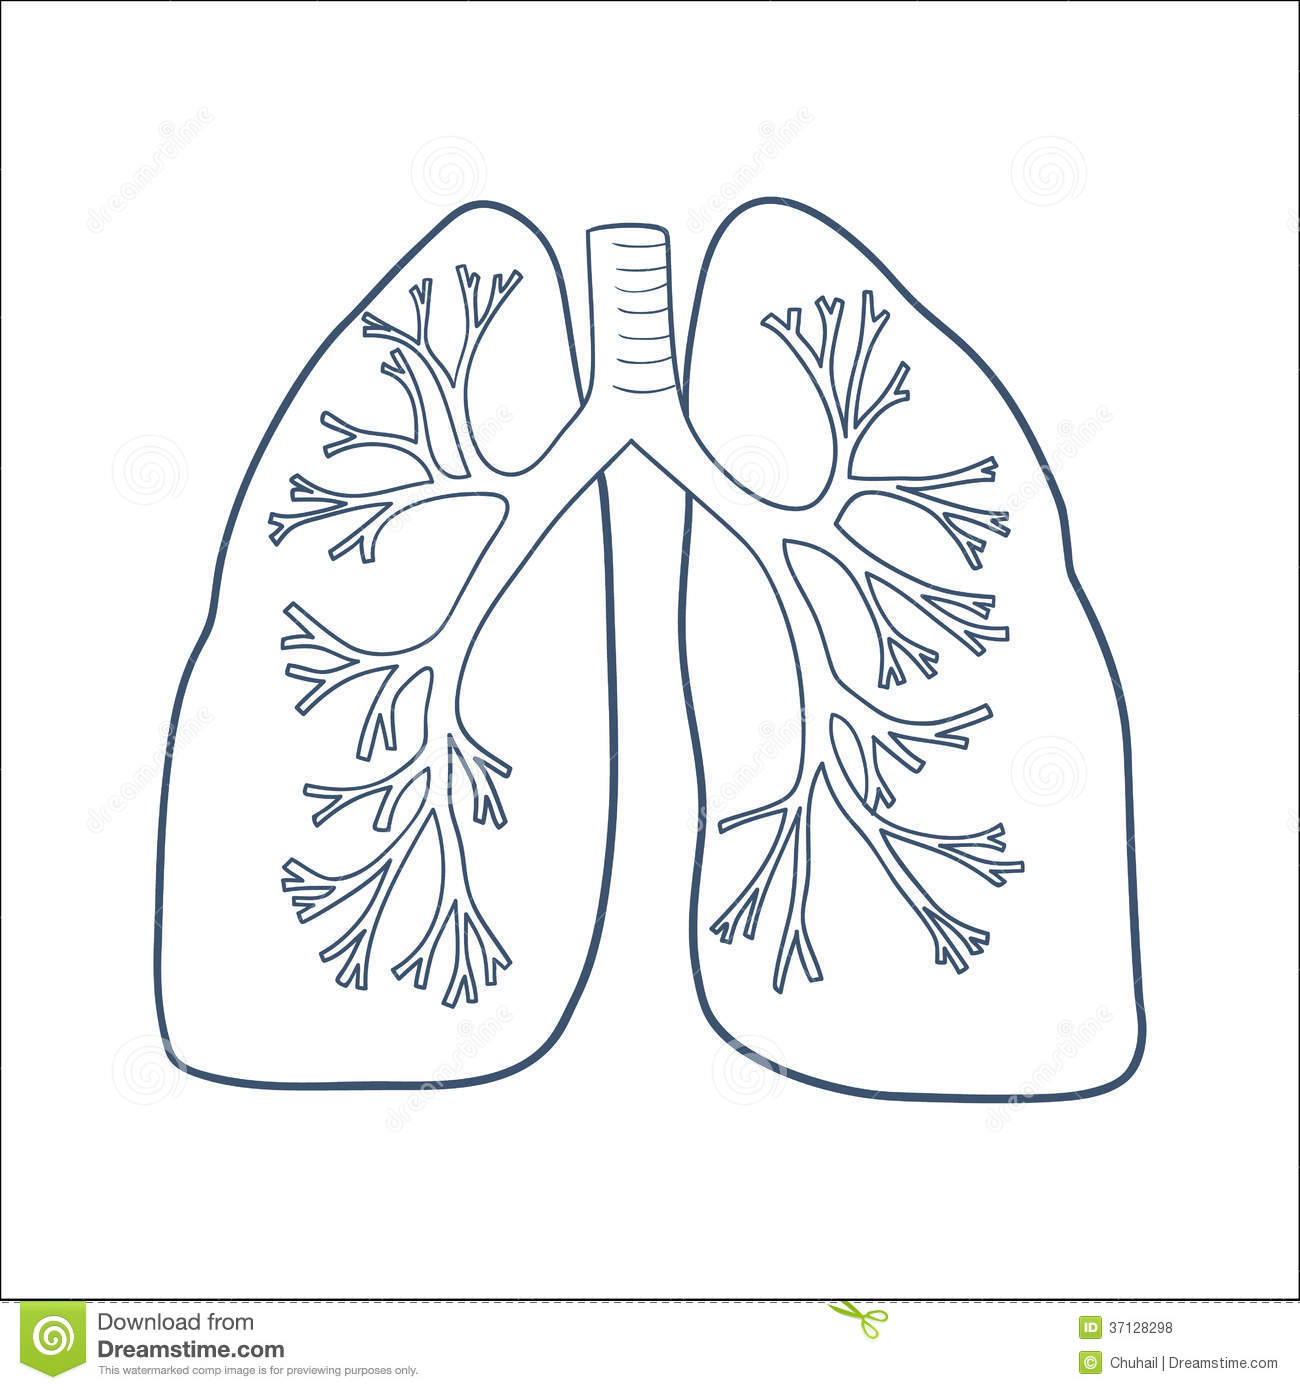 lung diagram drawing car equalizer anatomical lungs isolated on white stock vector